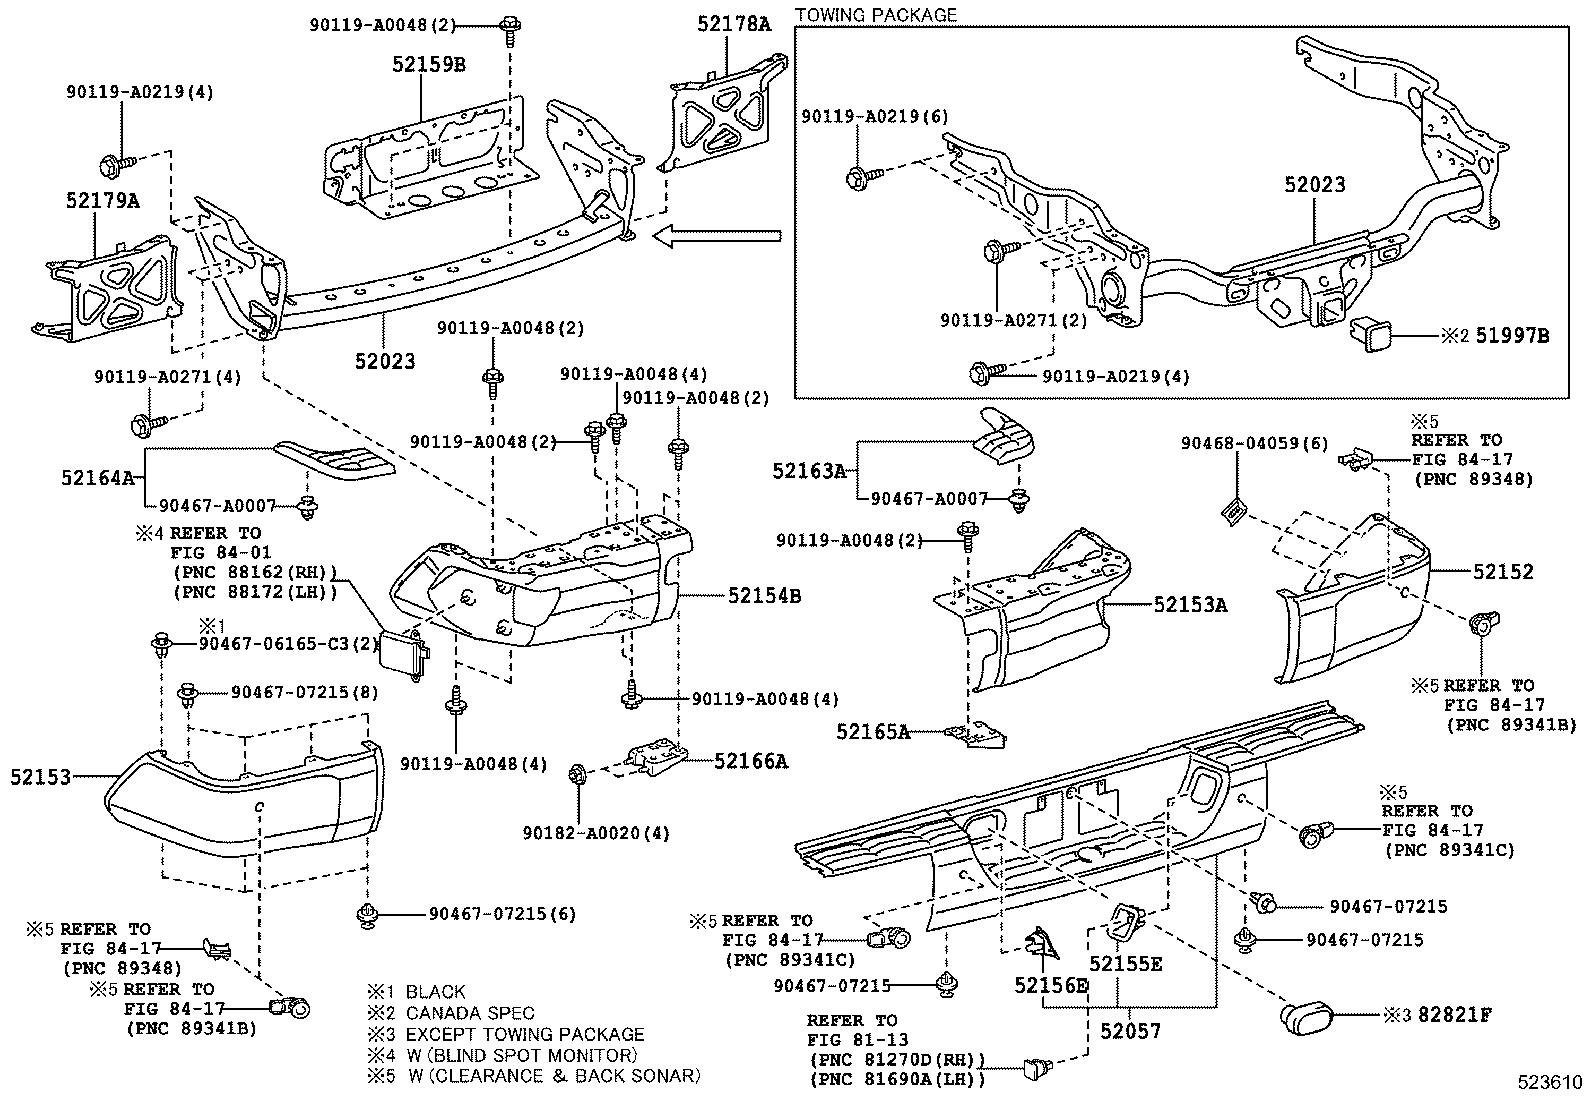 Toyota Tundra Reinforcement Sub Assembly Rear Bumper Towing Package Htwc